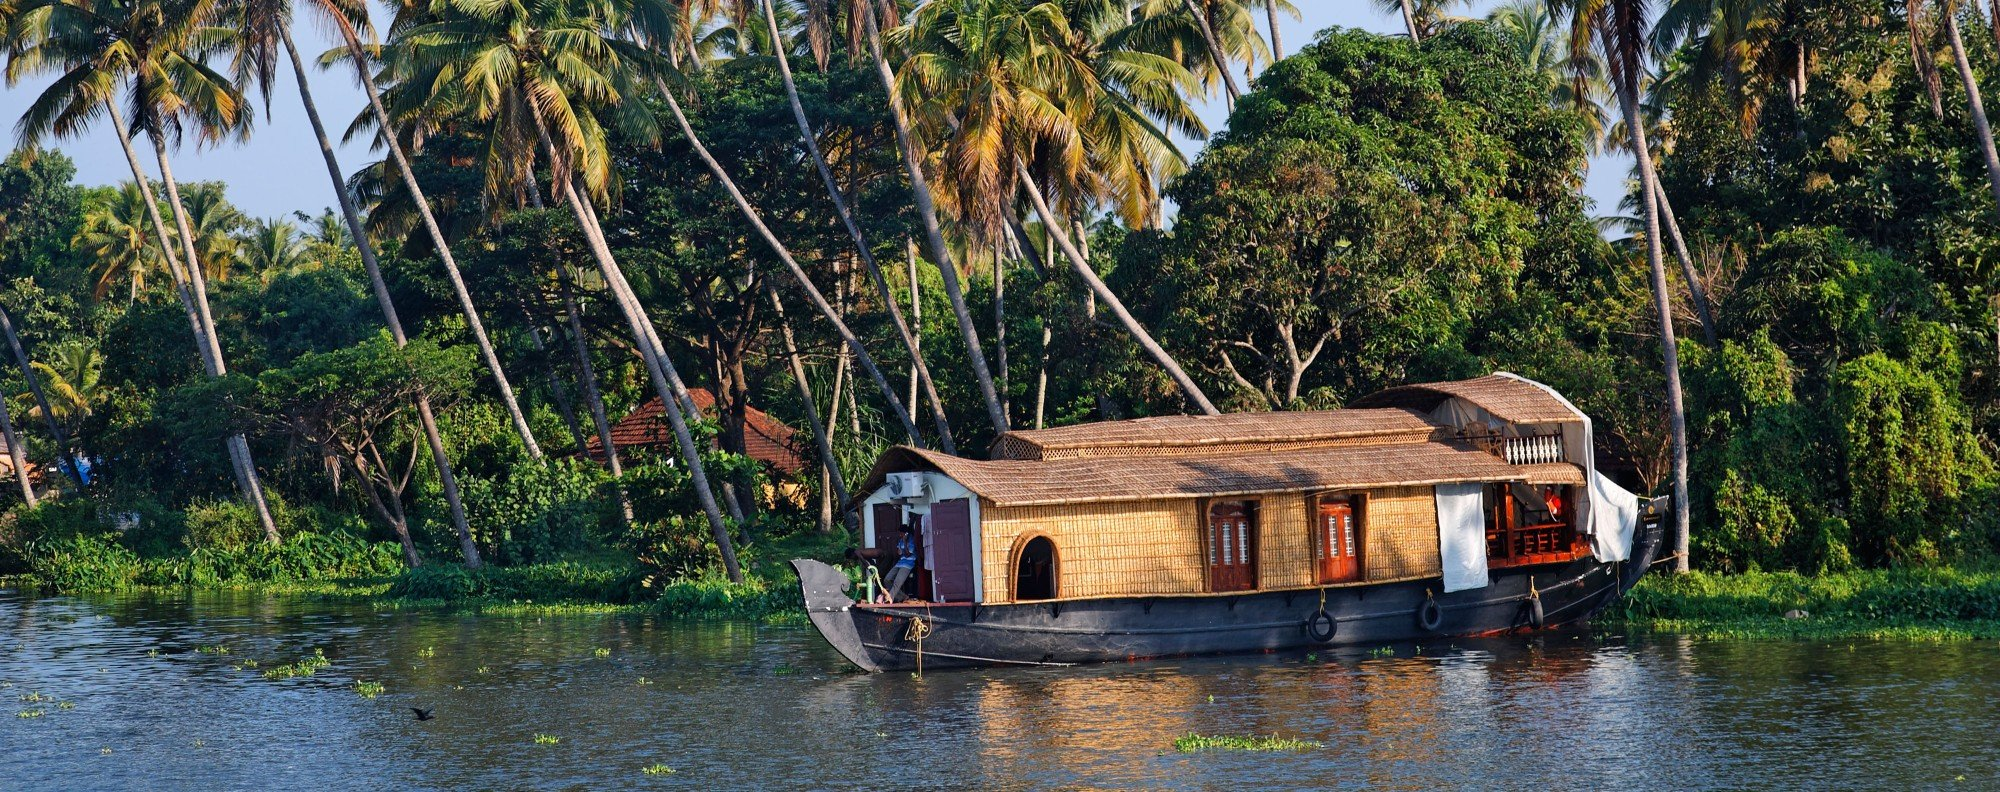 A houseboat in Kerala's backwaters. Picture: Alamy